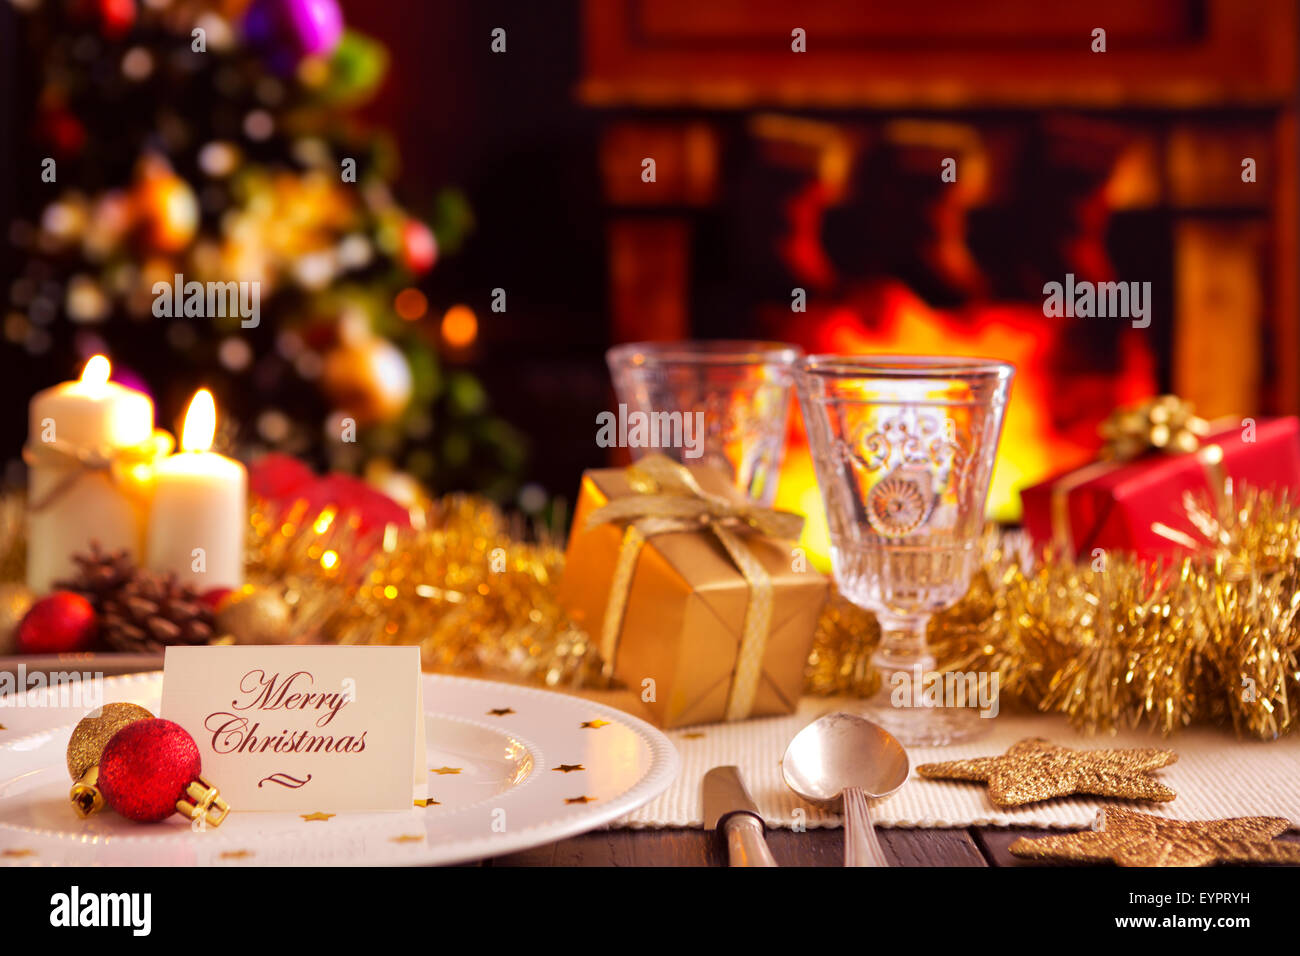 A romantic Christmas dinner table setting with candles and Christmas ...